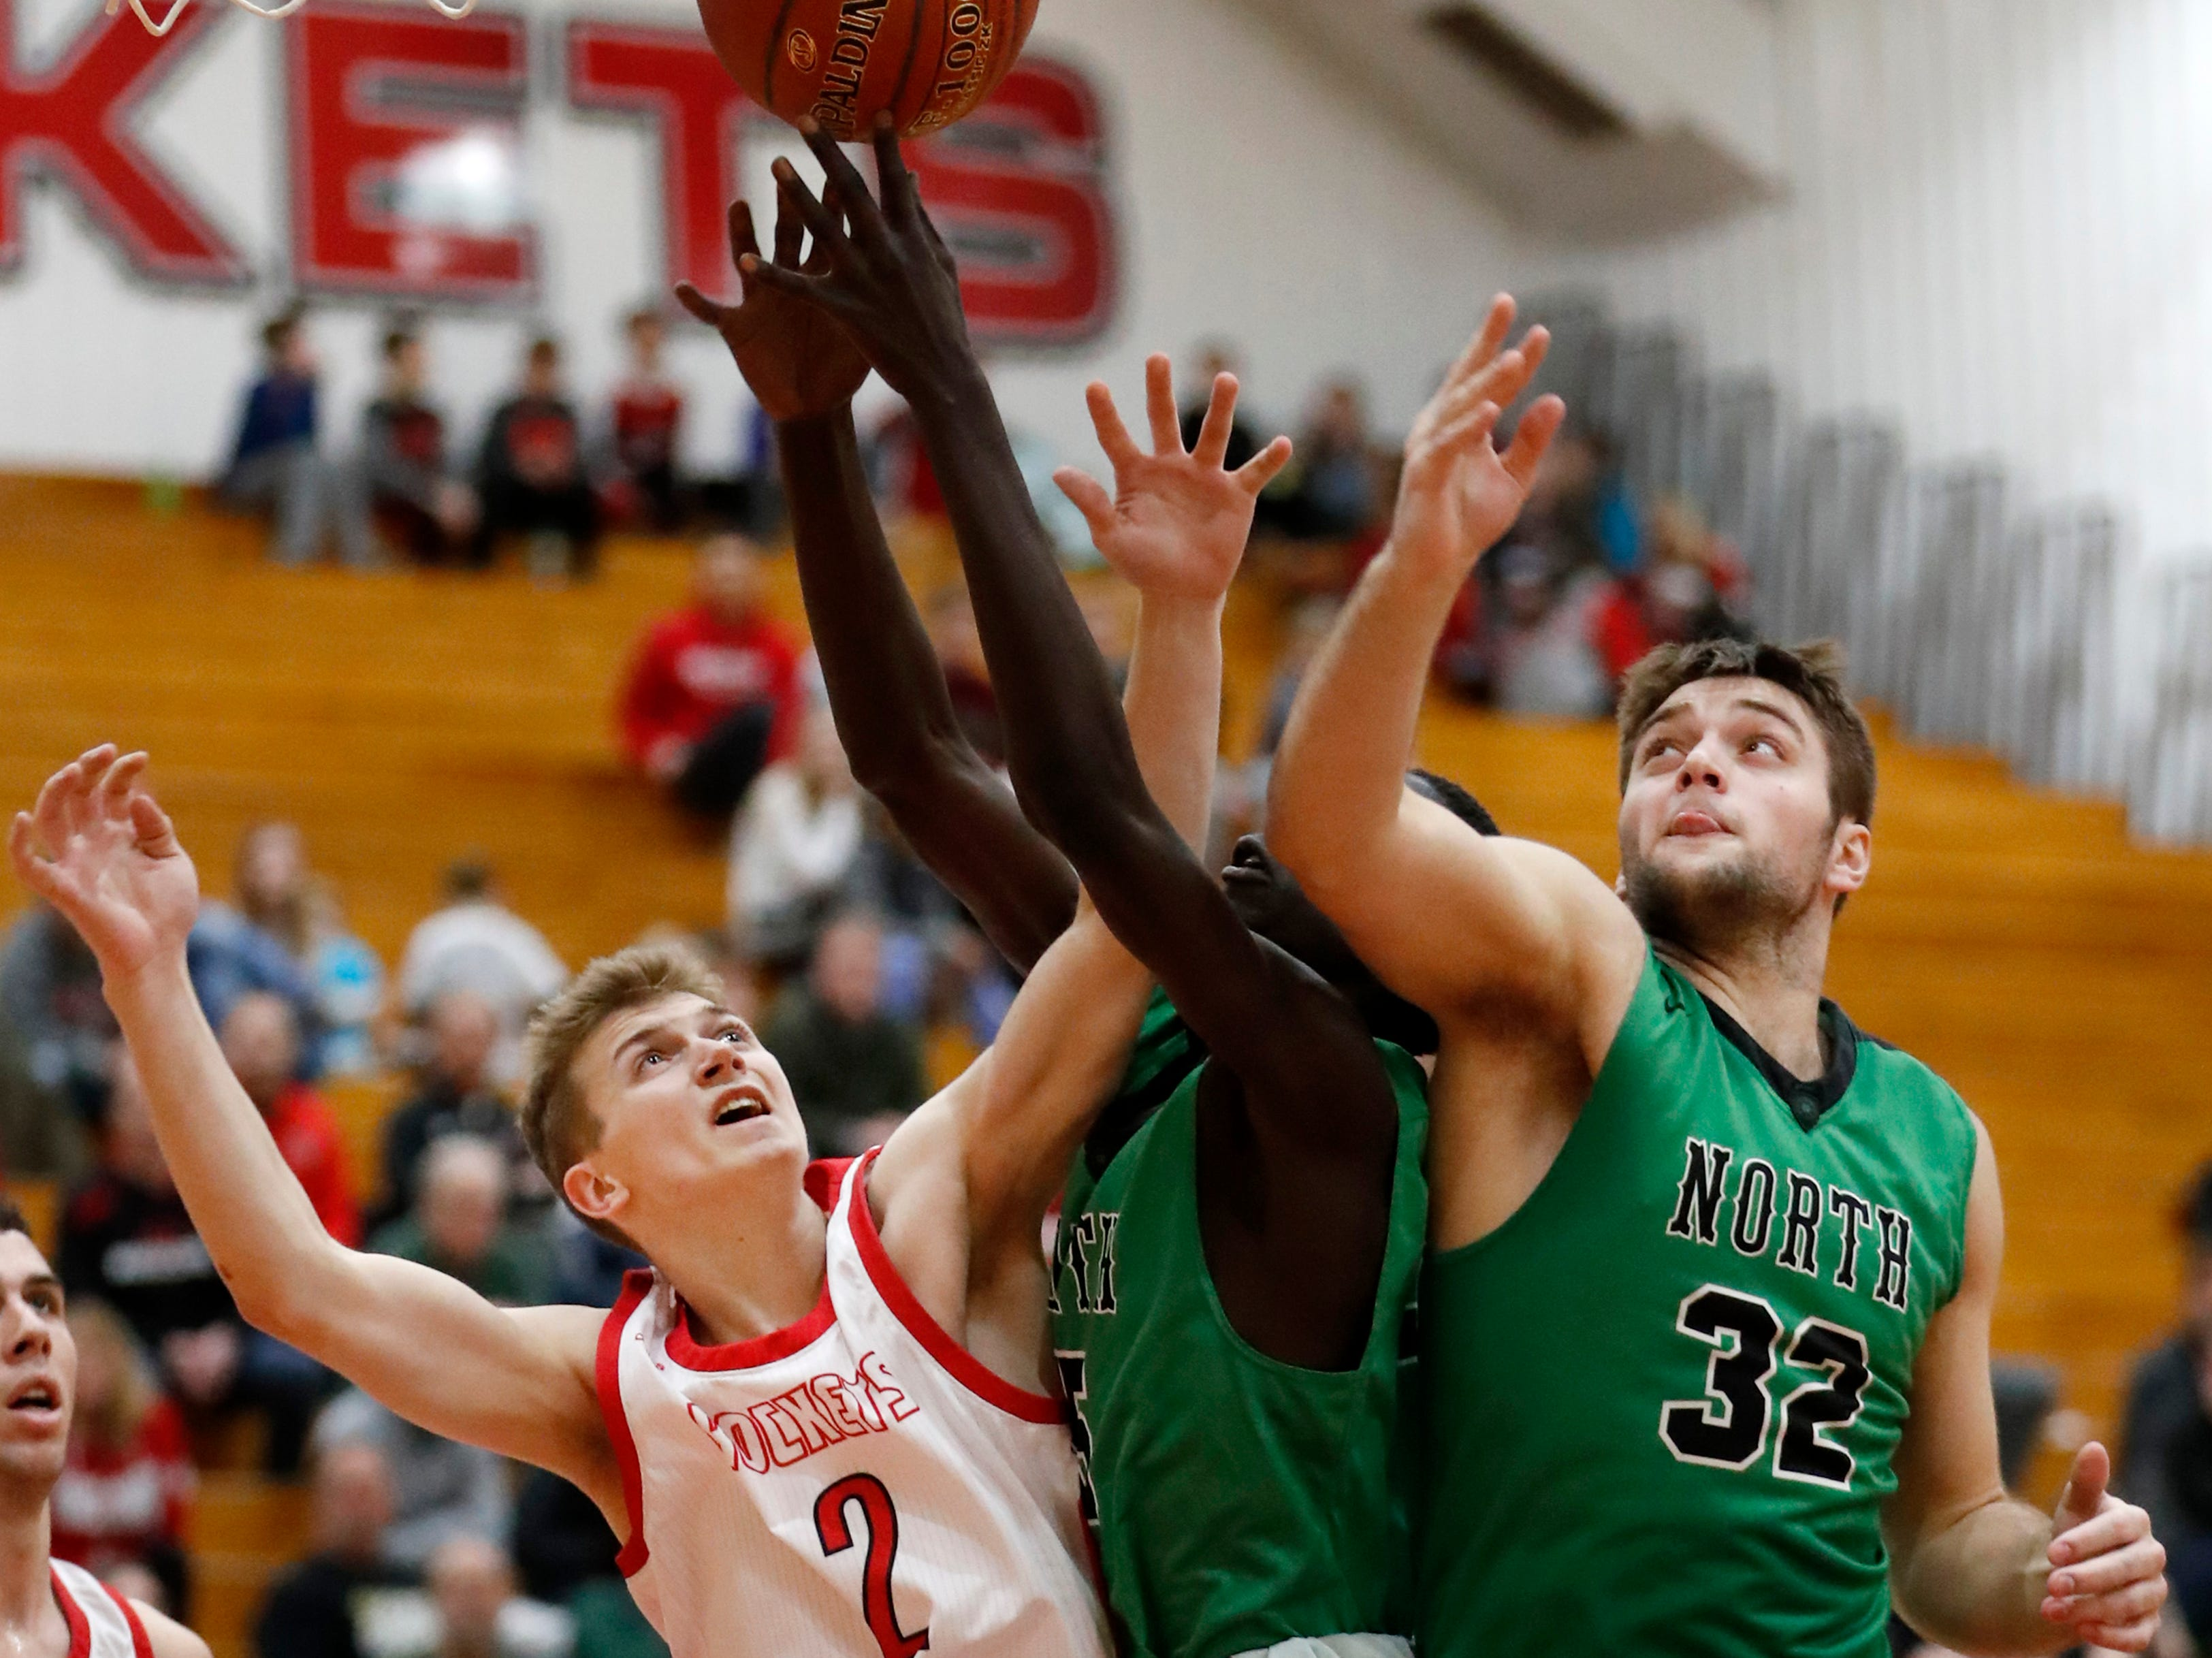 Neenah High SchoolÕs Jake Hablewitz, Oshkosh North High SchoolÕs Garang Deng and Oshkosh North High School's Matt Hickey go for a rebound Friday, Jan. 18, 2019, in Neenah, Wis.